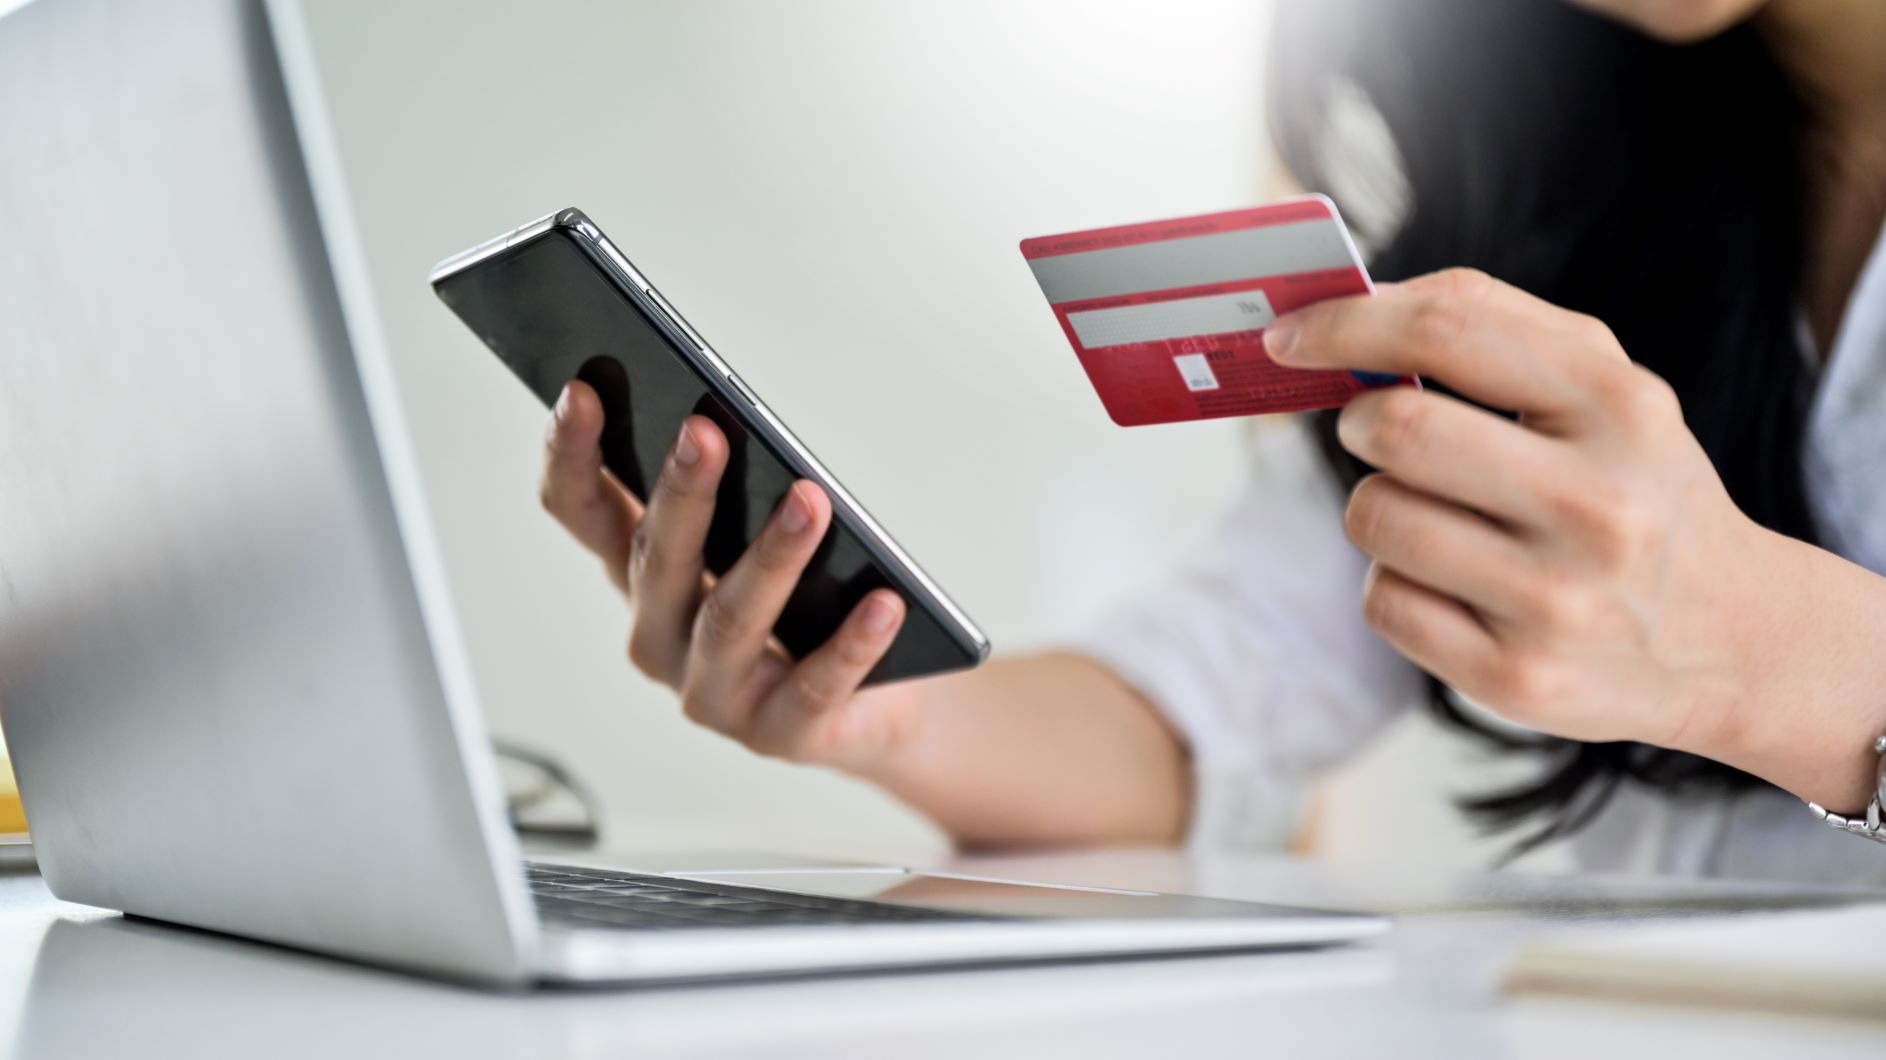 woman holding credit card and phone next to laptop